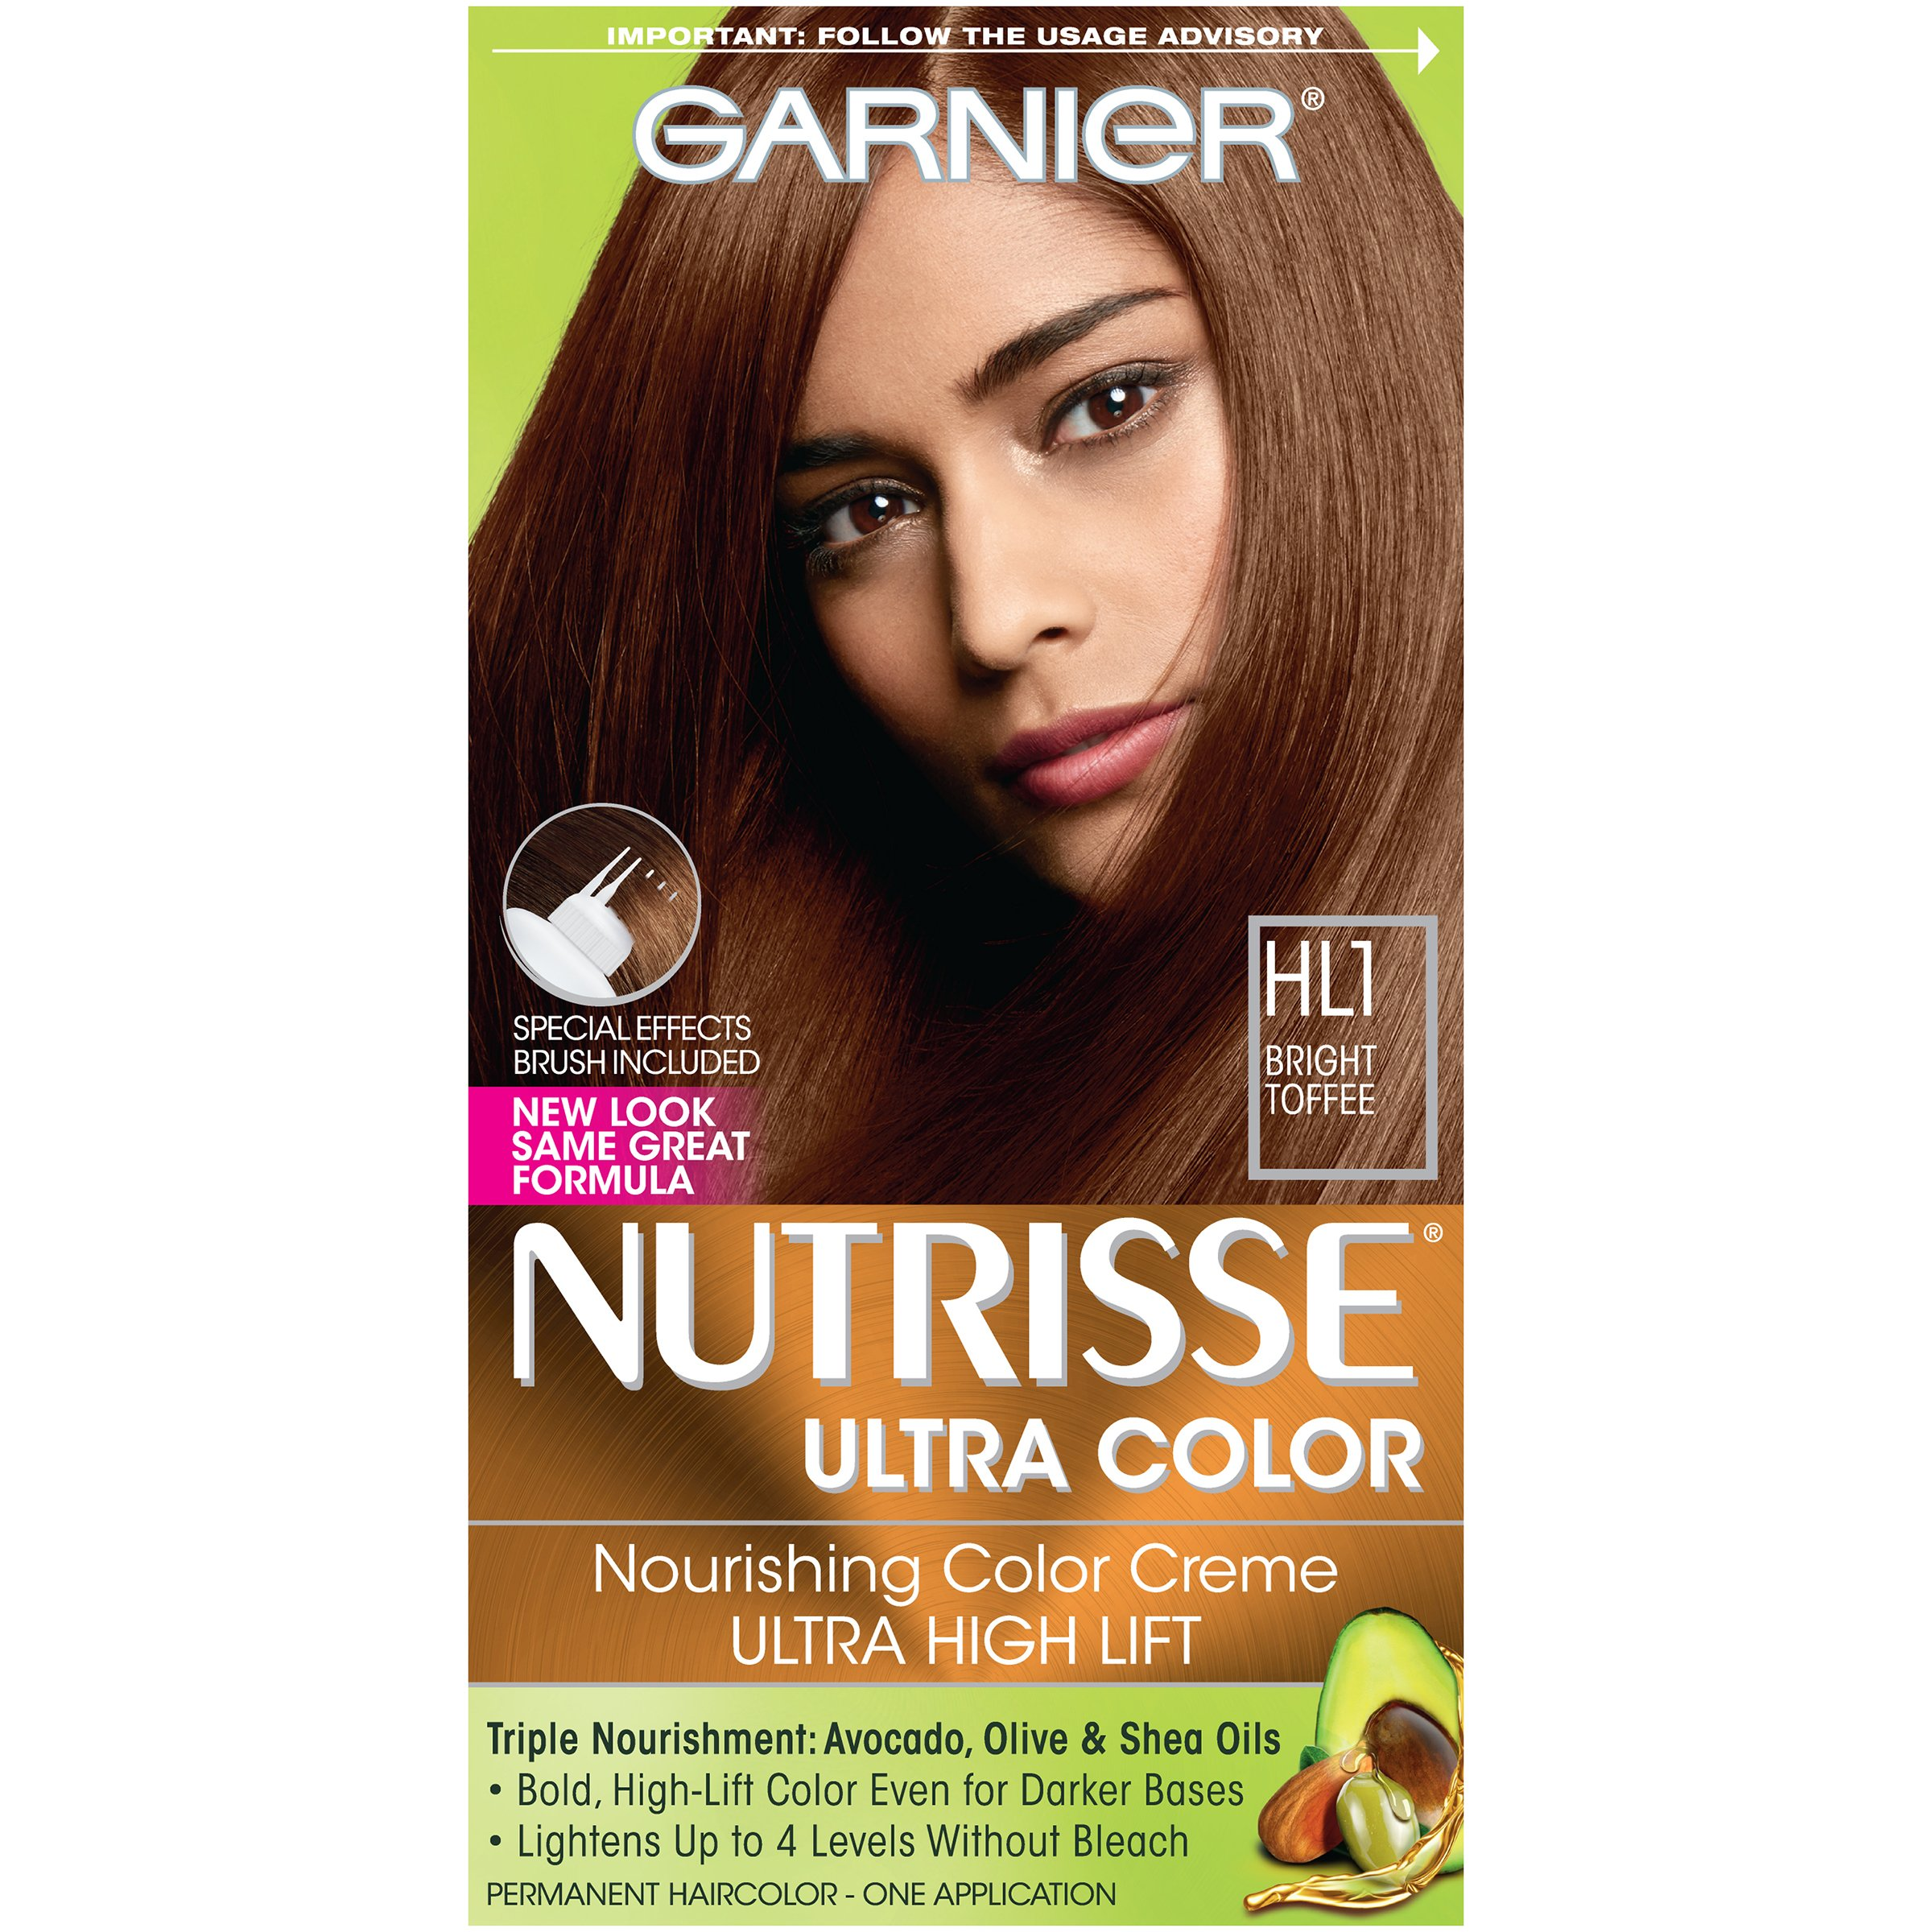 Amazon garnier nutrisse ultra color ultra bold brown b3 garnier nutrisse ultra color nourishing hair color creme hl1 bright toffee packaging may vary geenschuldenfo Image collections